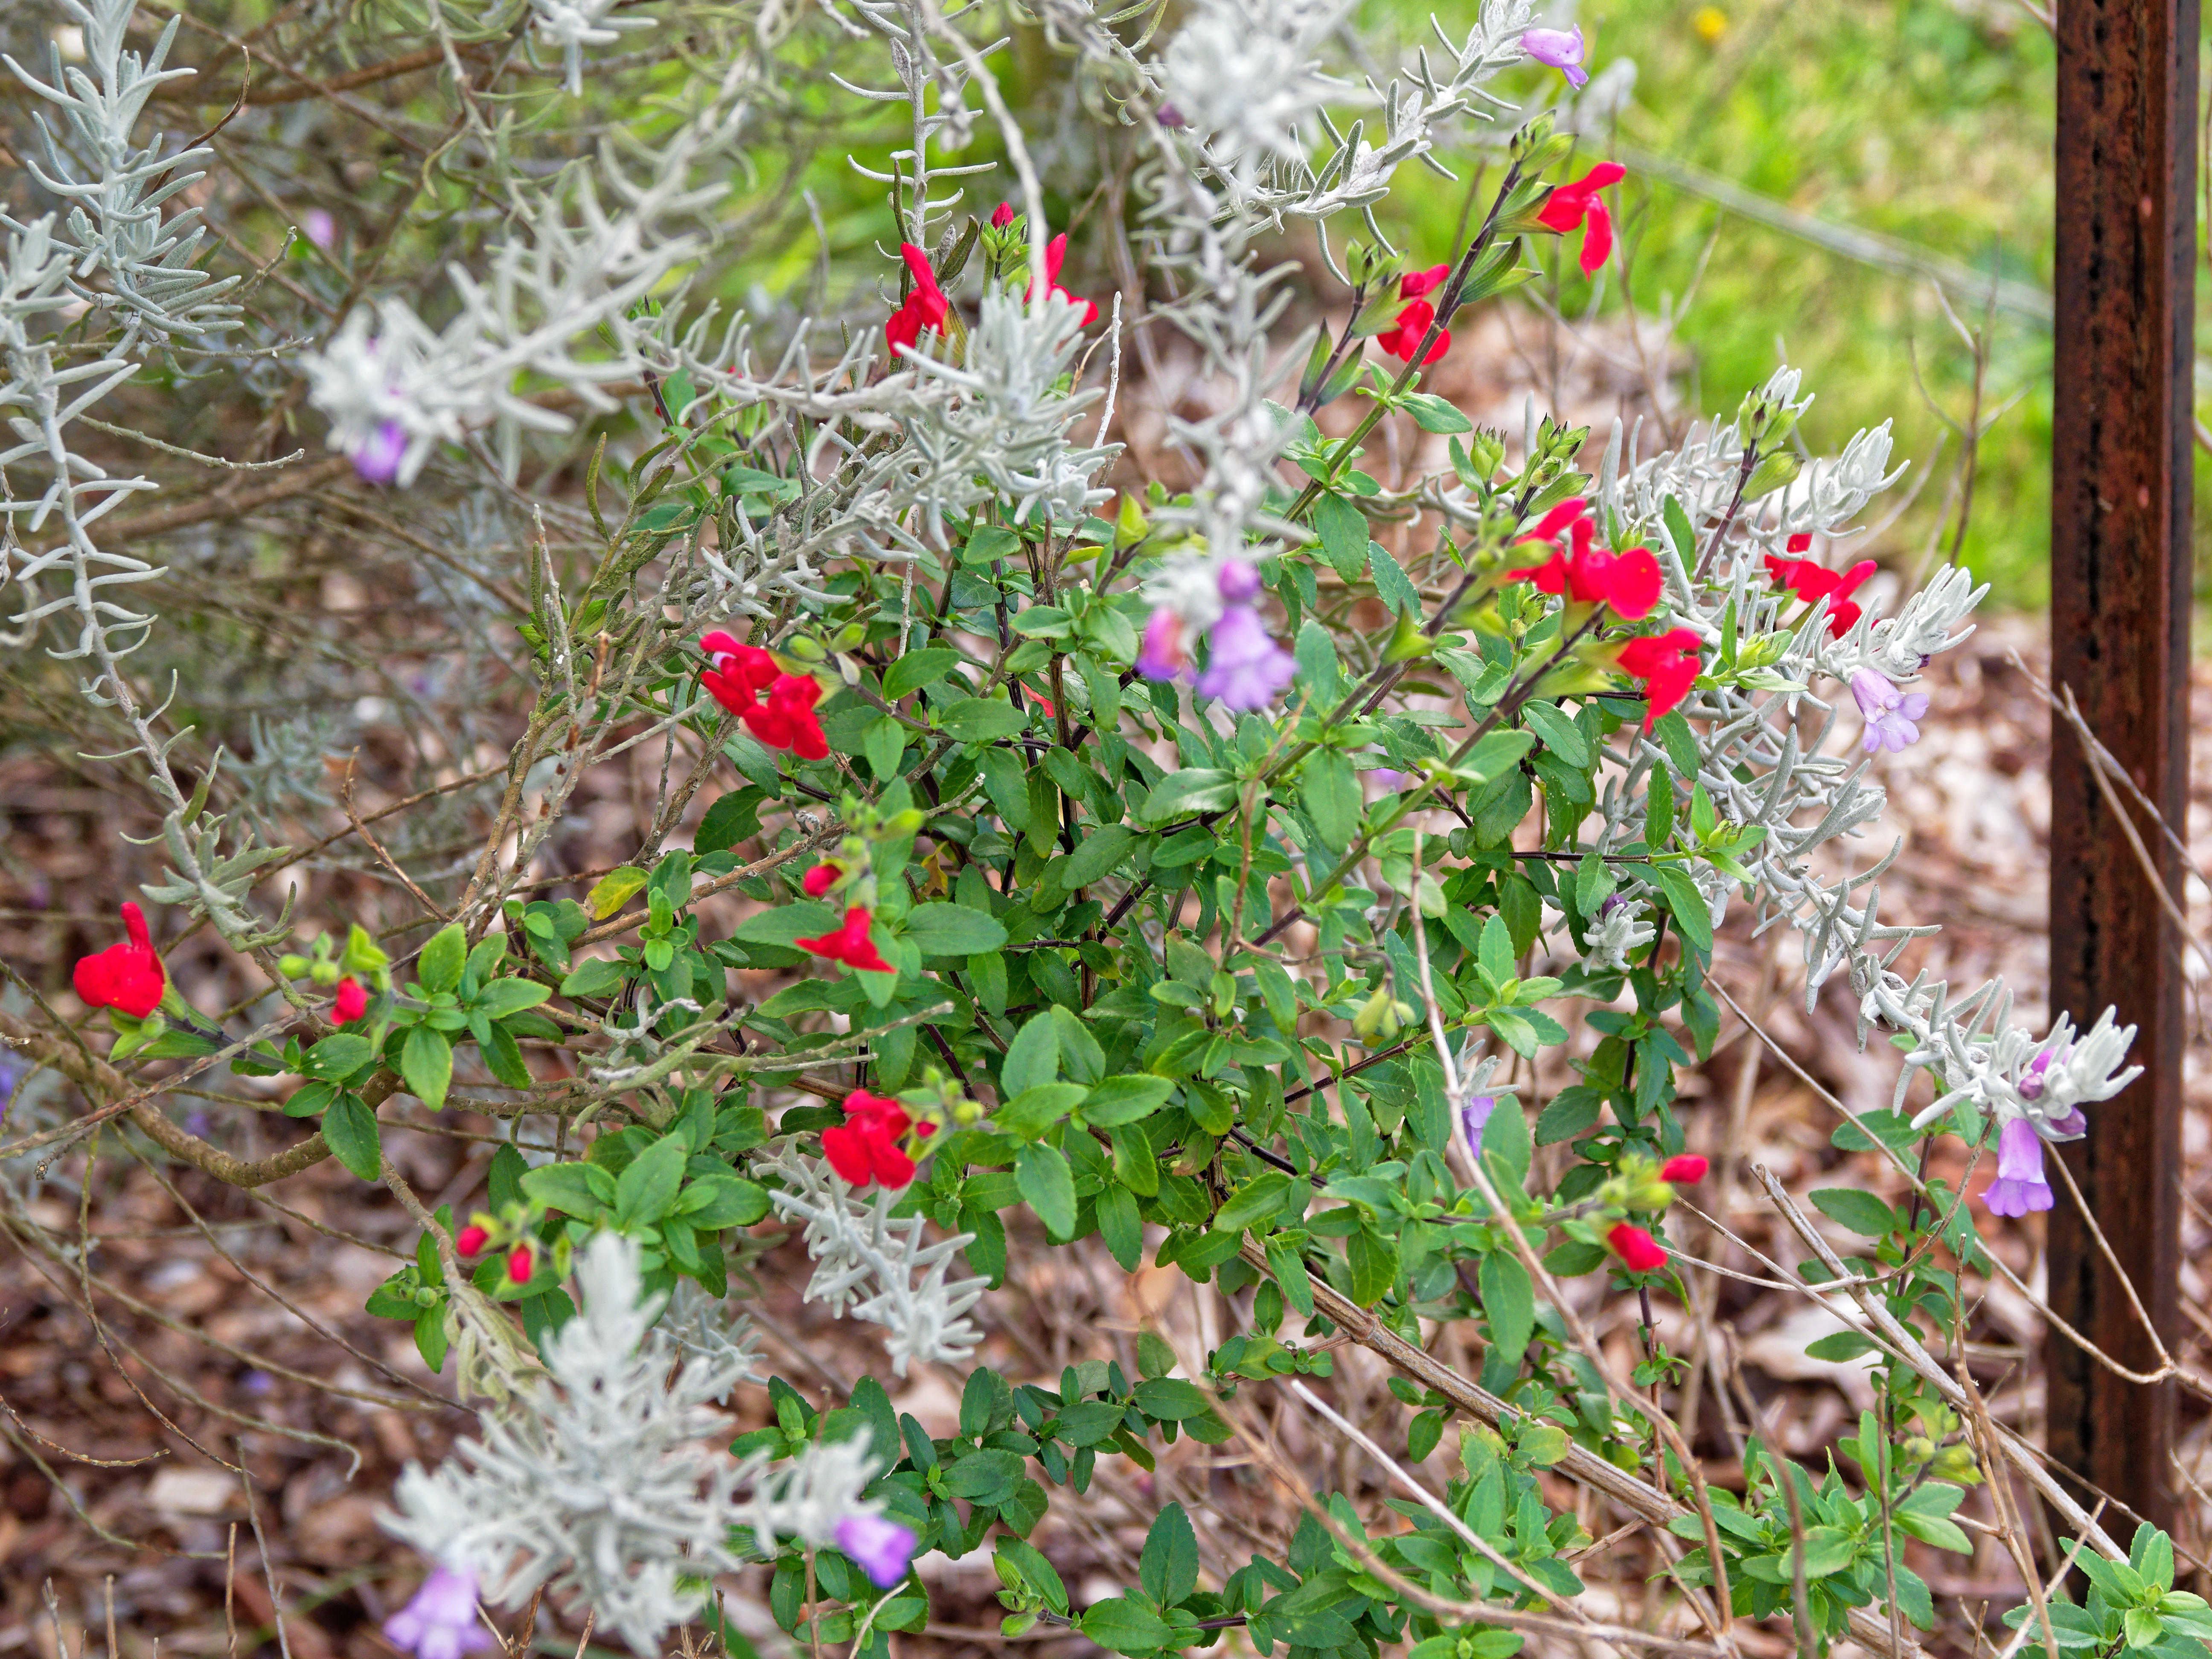 This should be Salvia-microphylla.jpeg.  Is it missing?